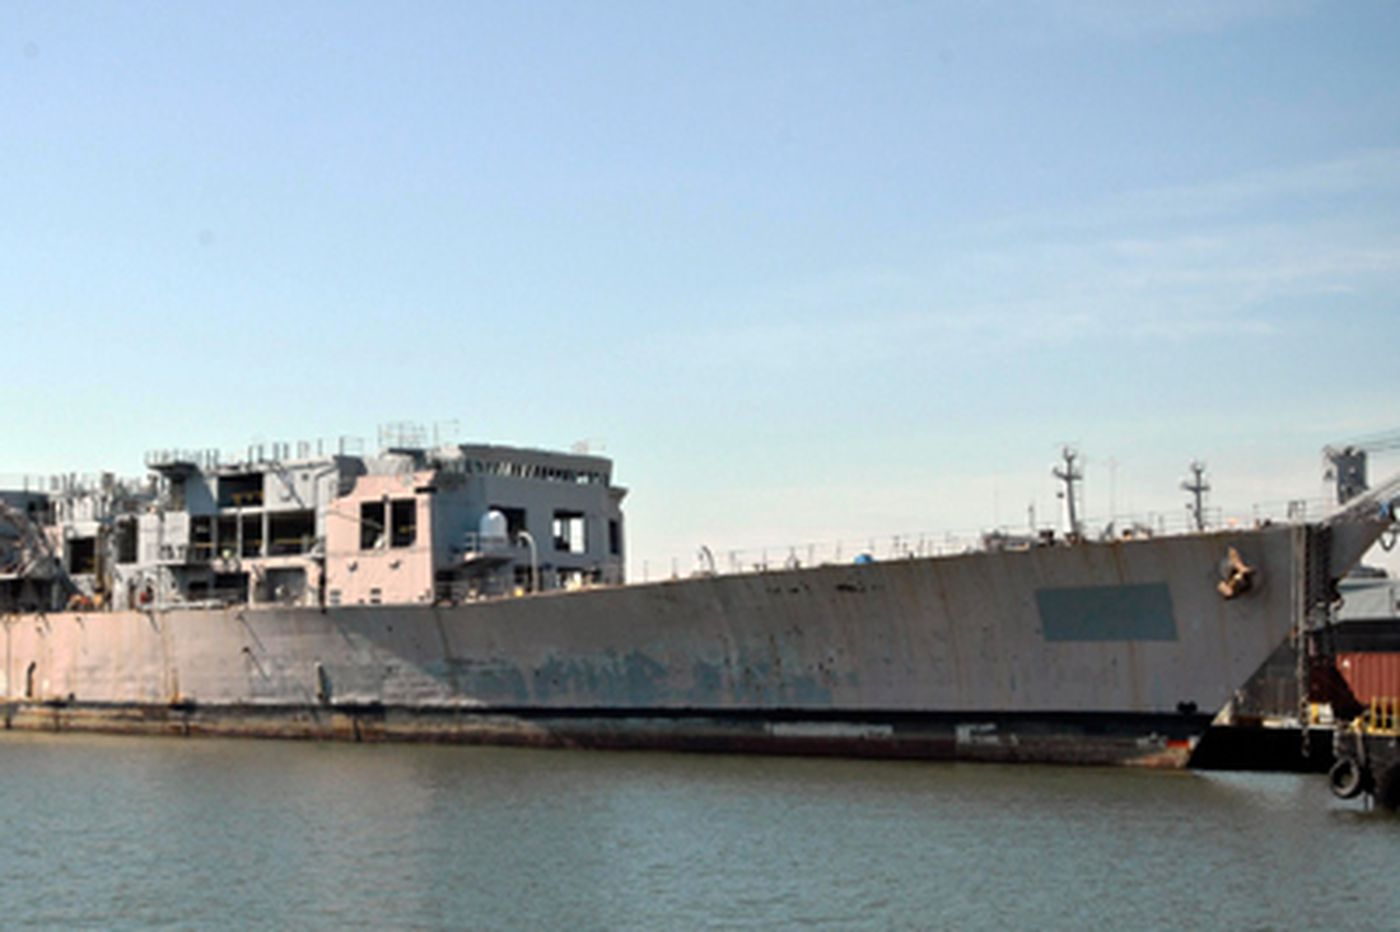 Destroyer Arthur W. Radford to become reef off New Jersey coast